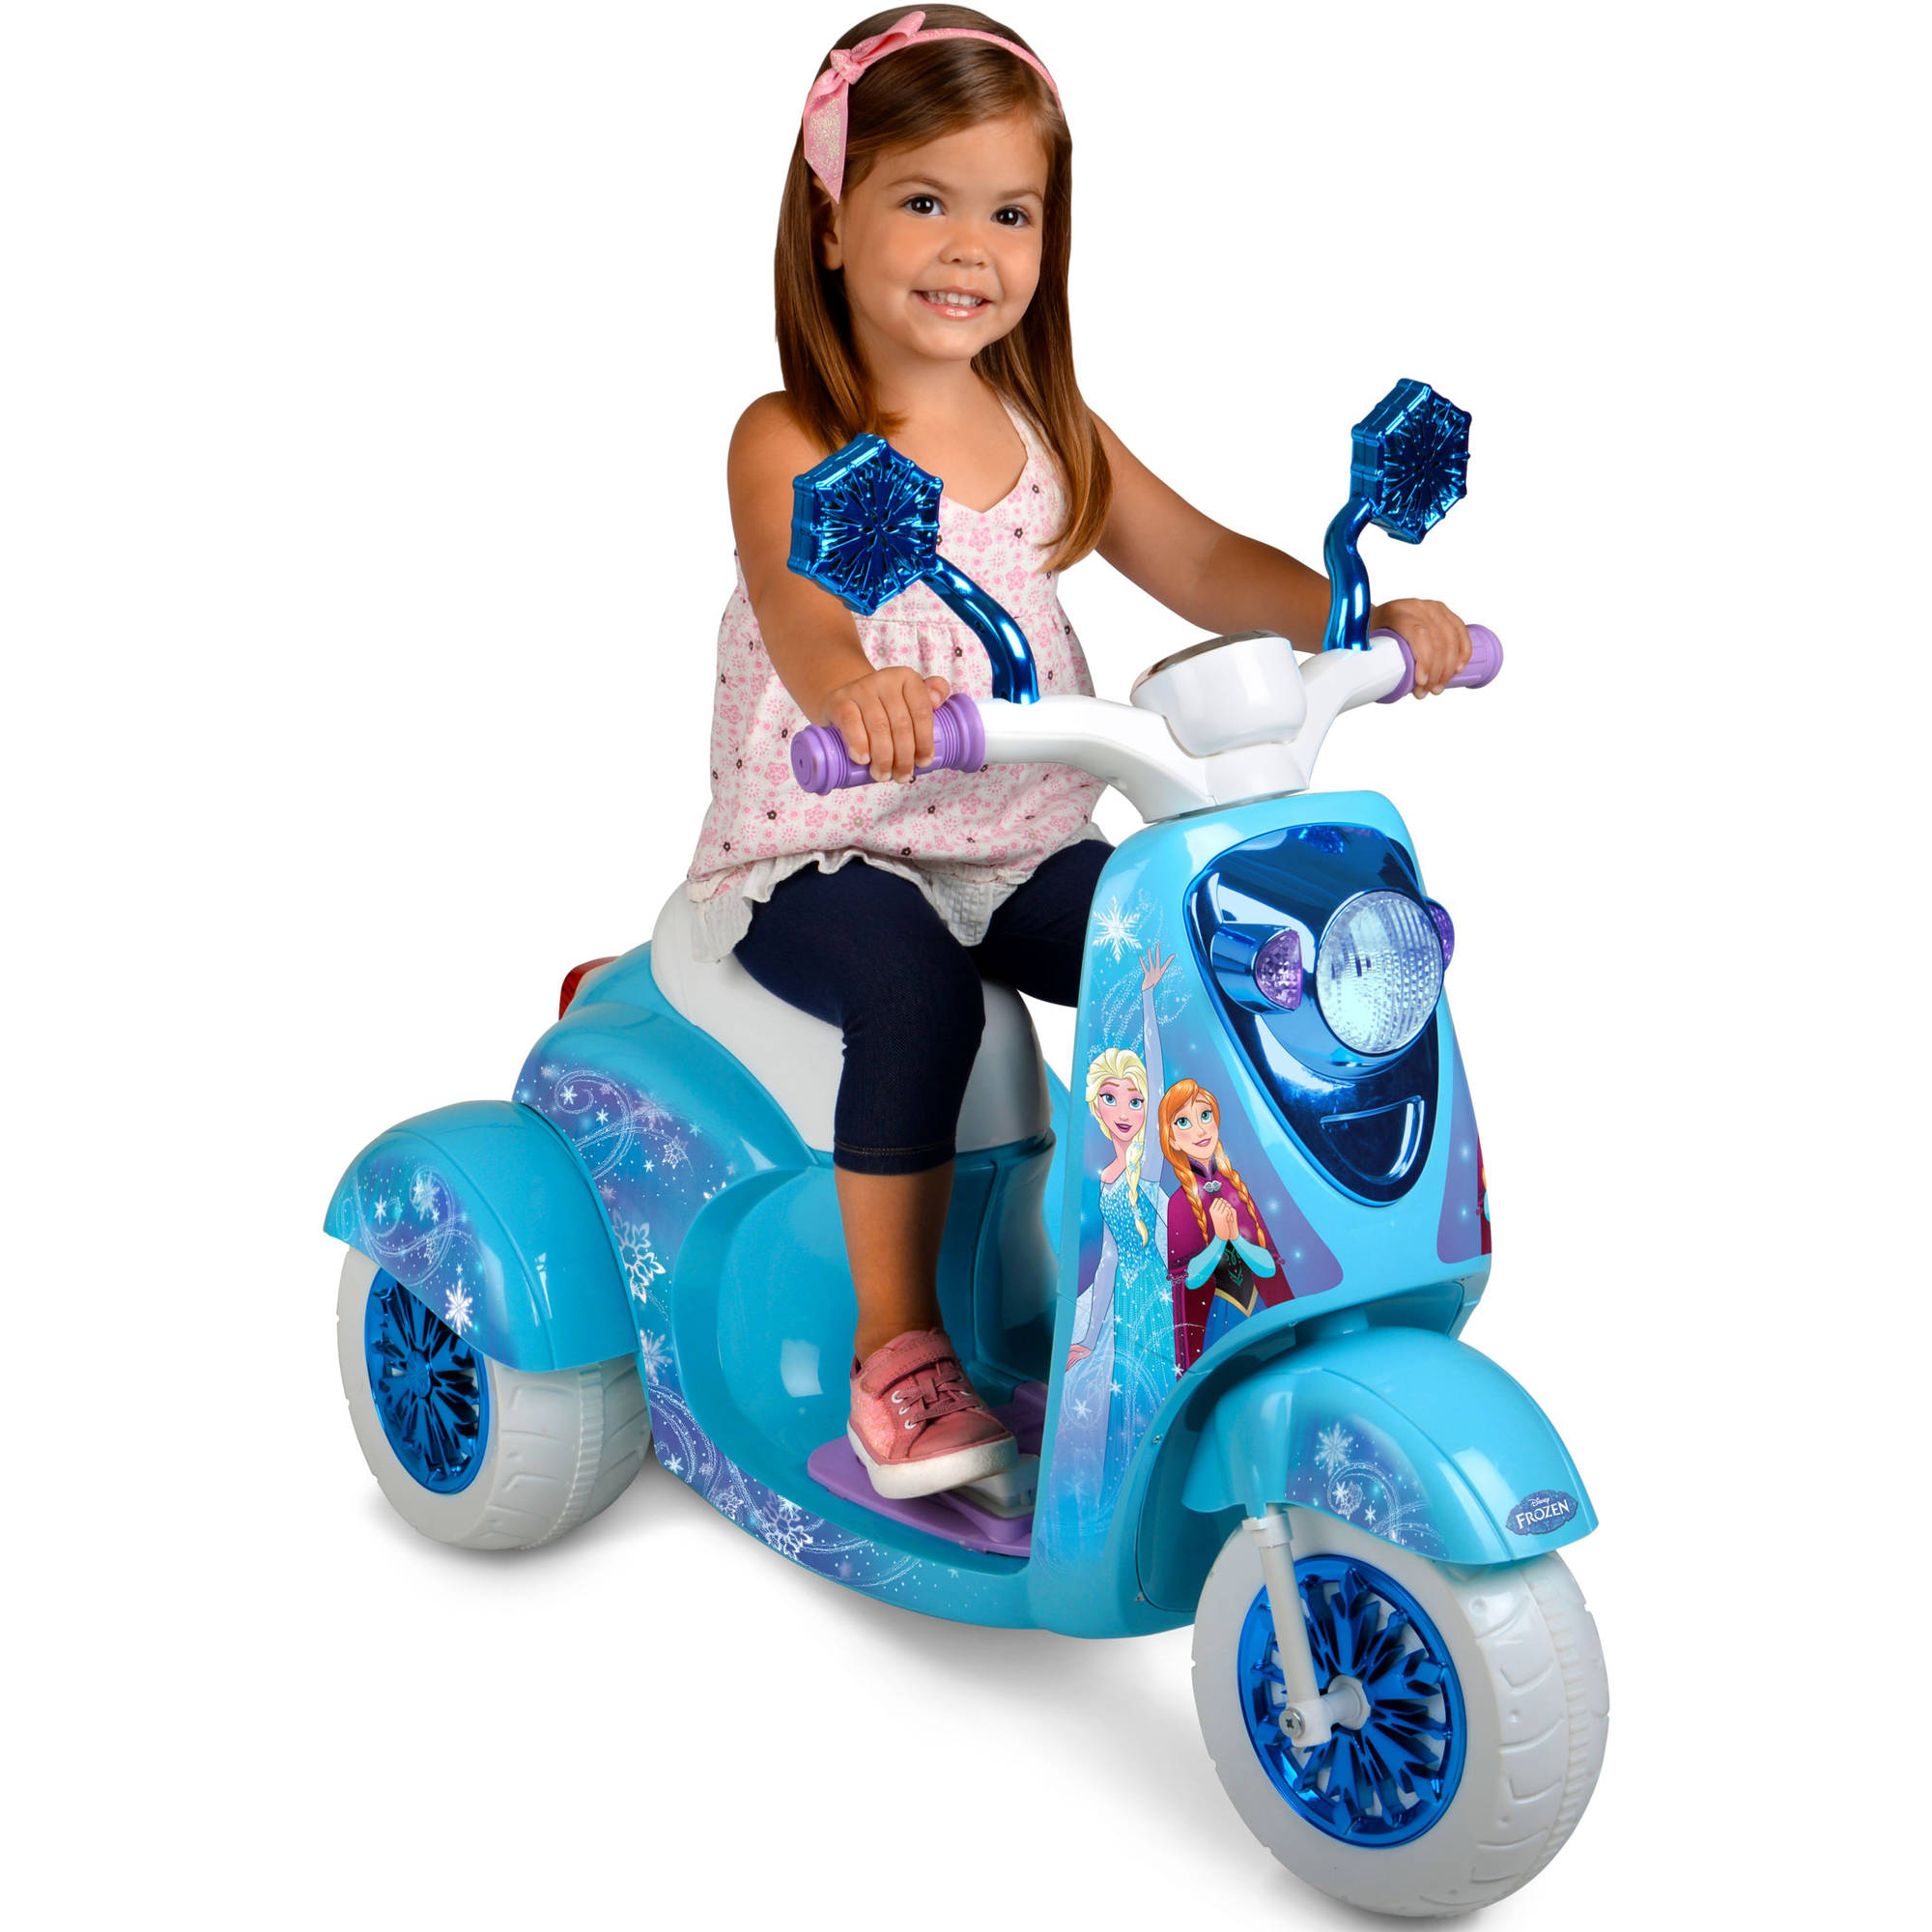 6V Disney Frozen 3-Wheel Scooter Ride On